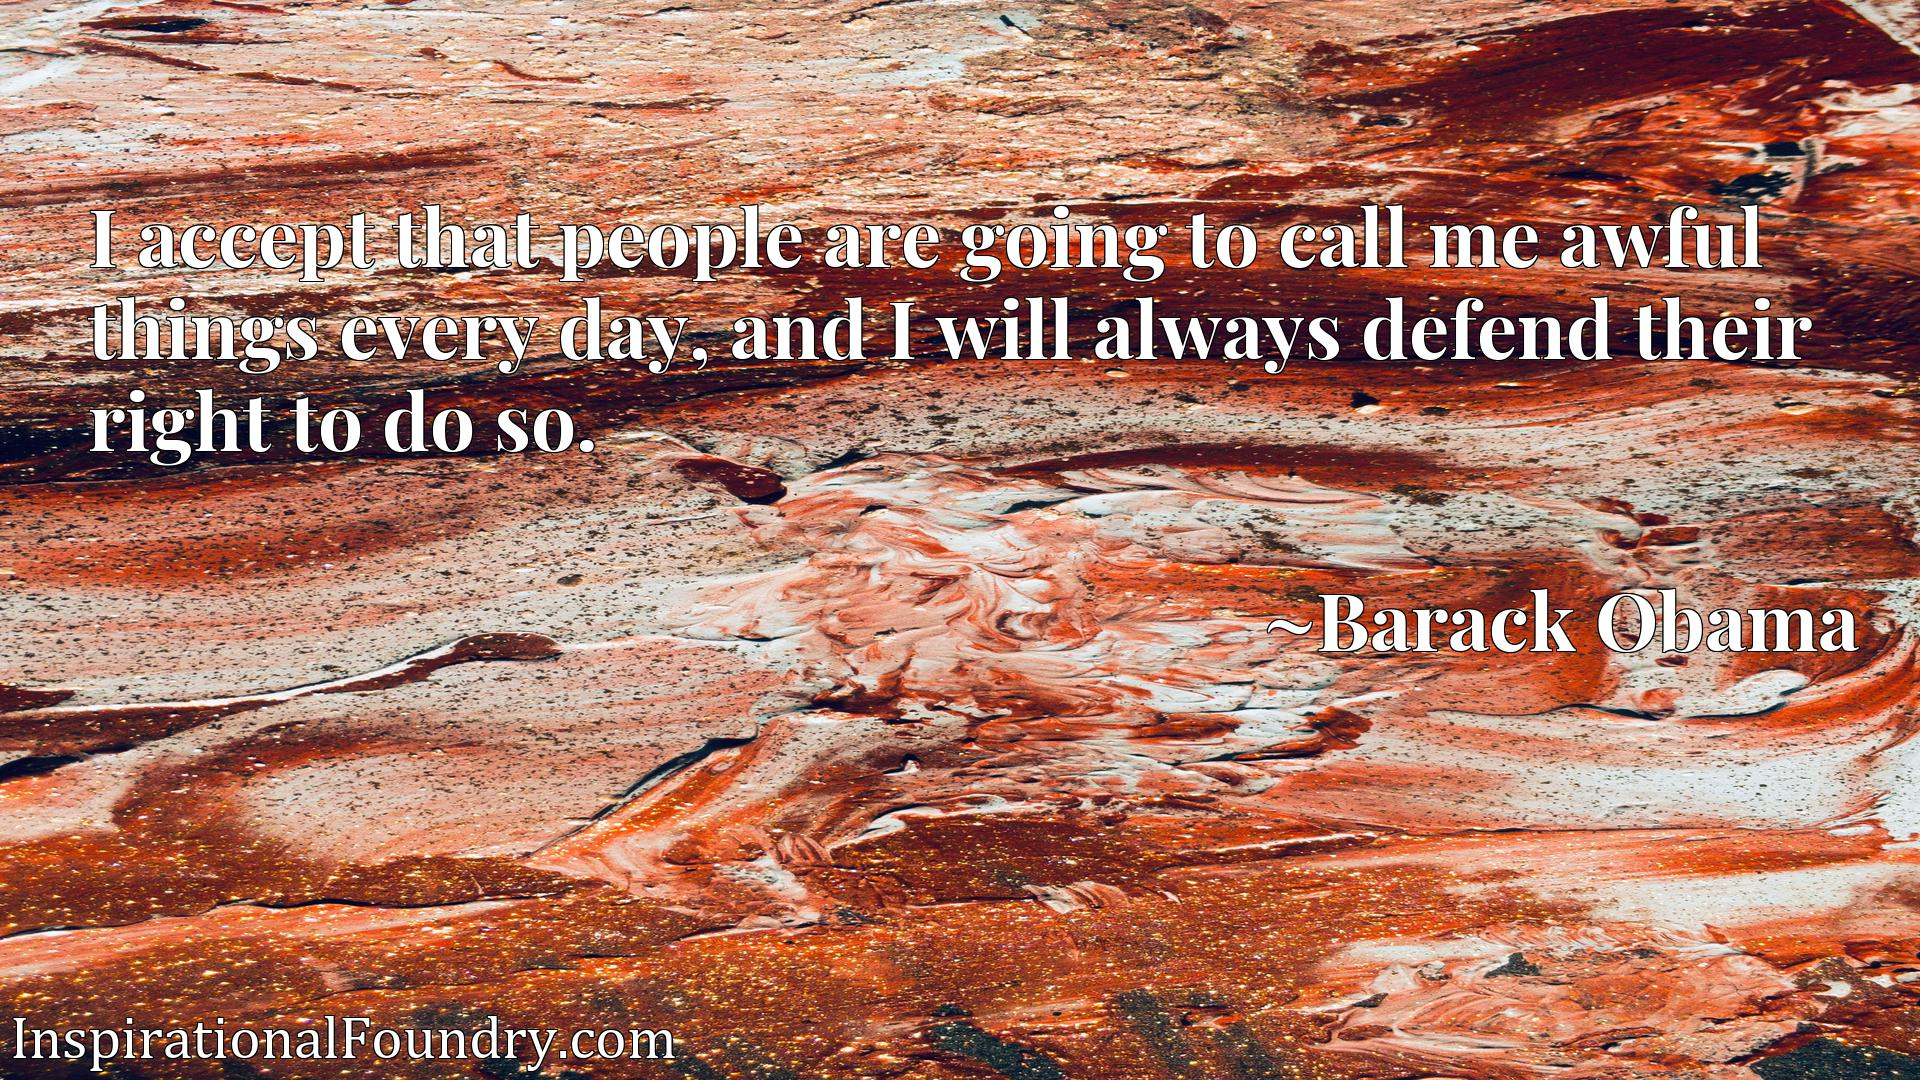 Quote Picture :I accept that people are going to call me awful things every day, and I will always defend their right to do so.